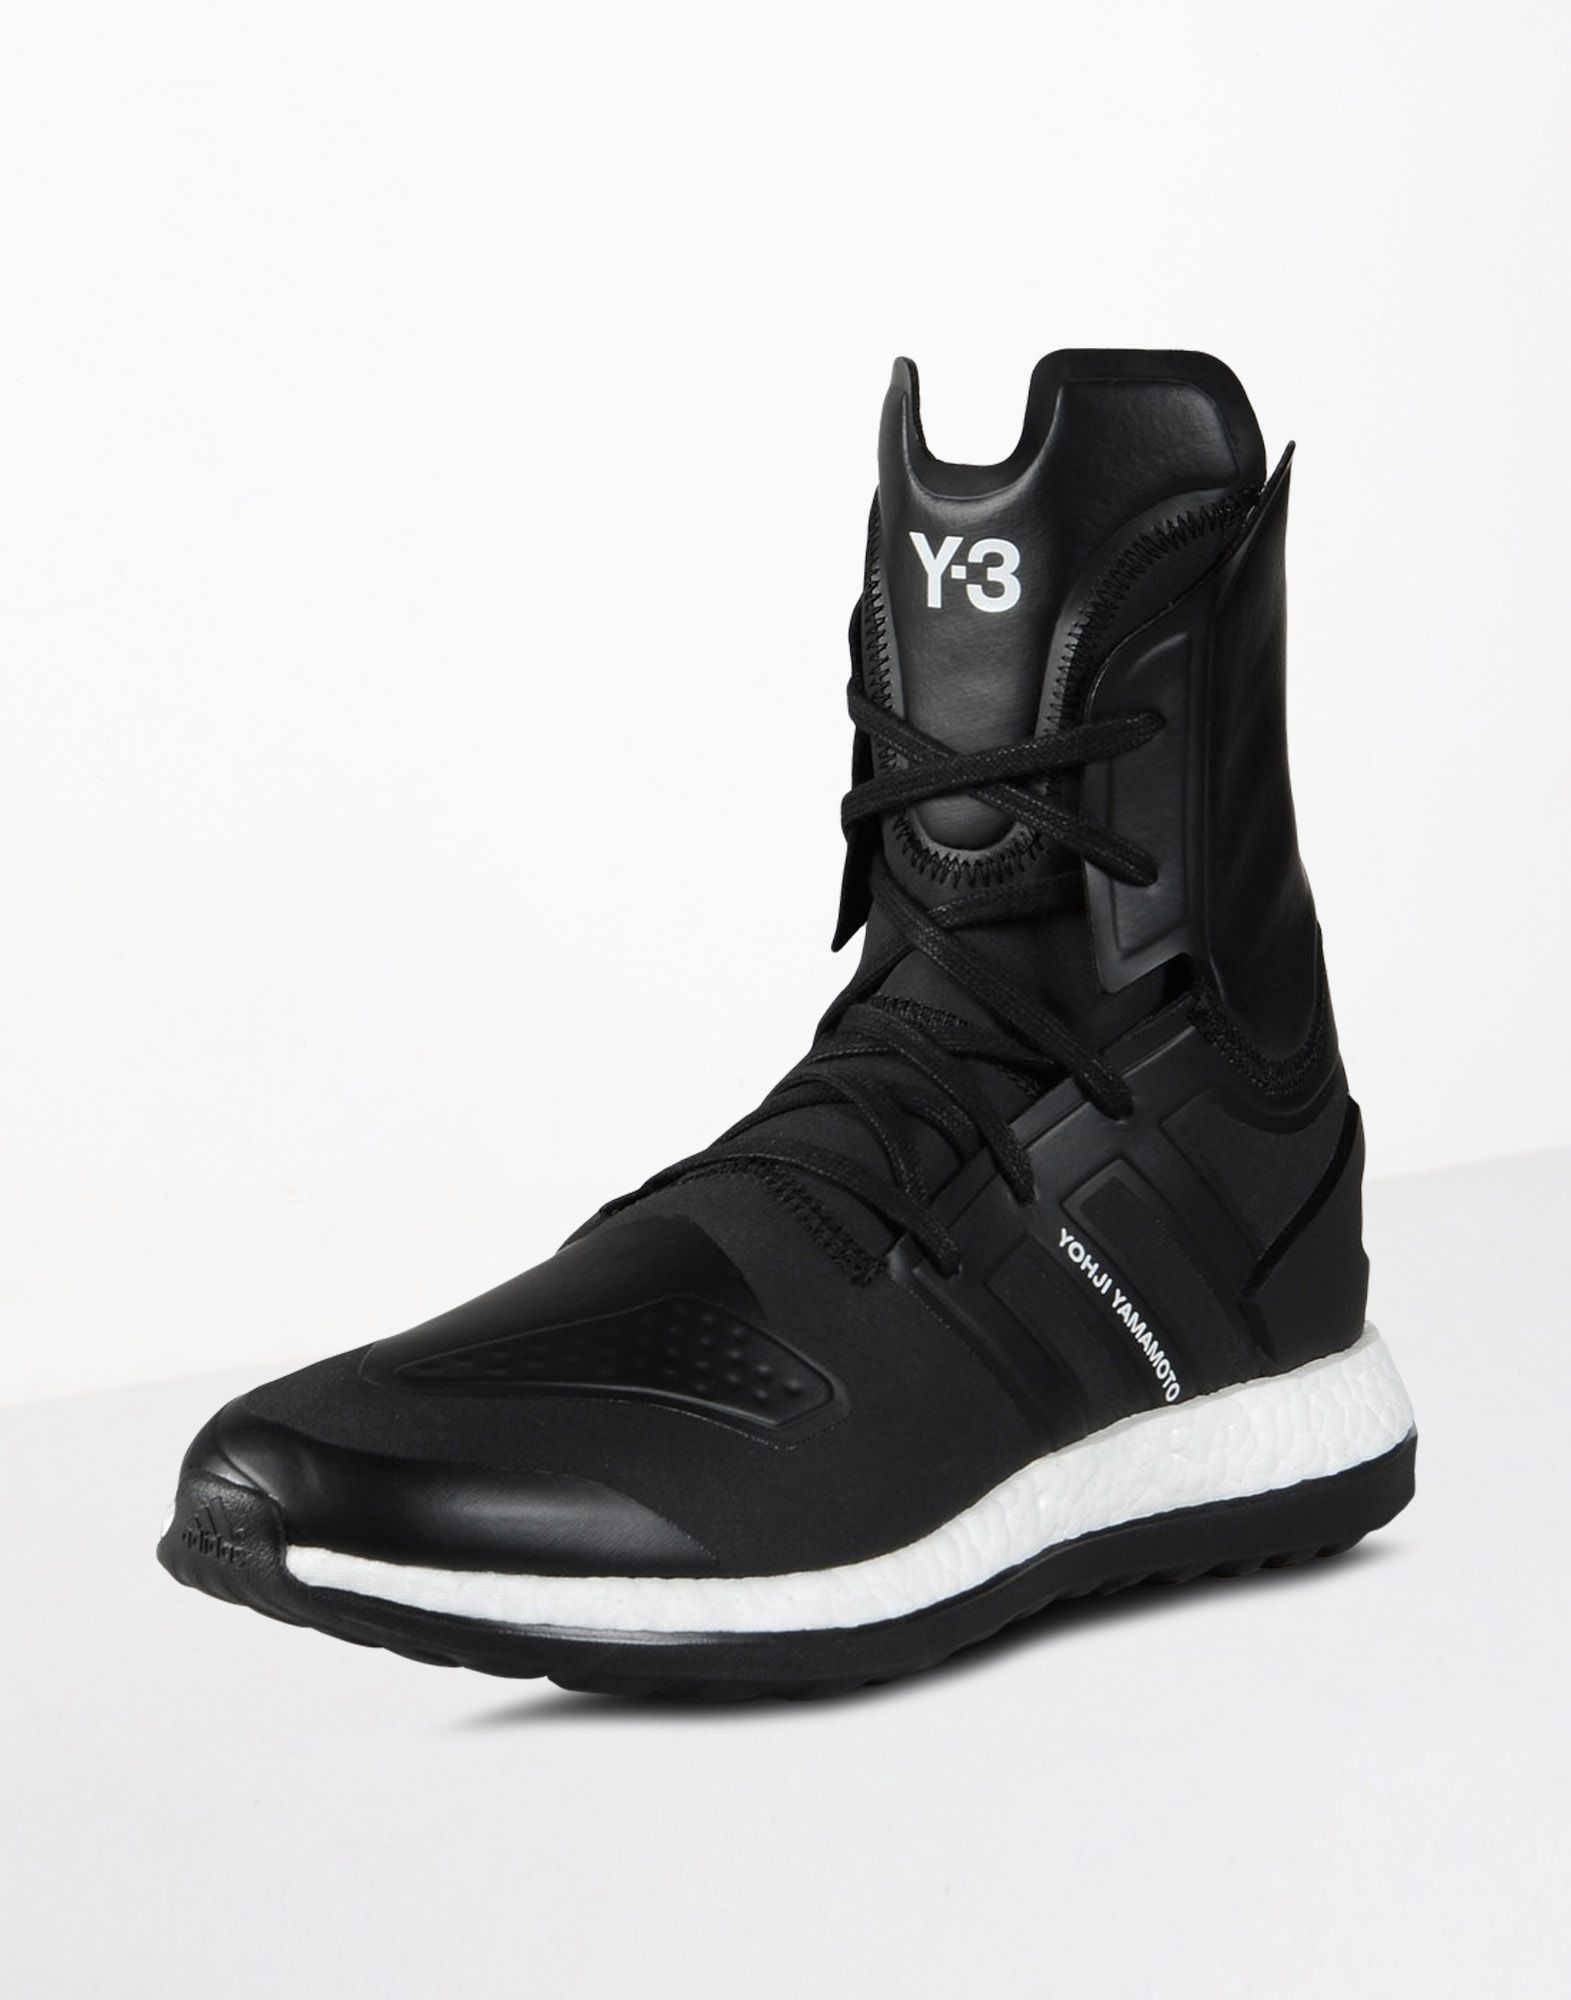 4a62a2a86b43 Y-3 PUREBOOST ZG HIGH SHOES man Y-3 adidas